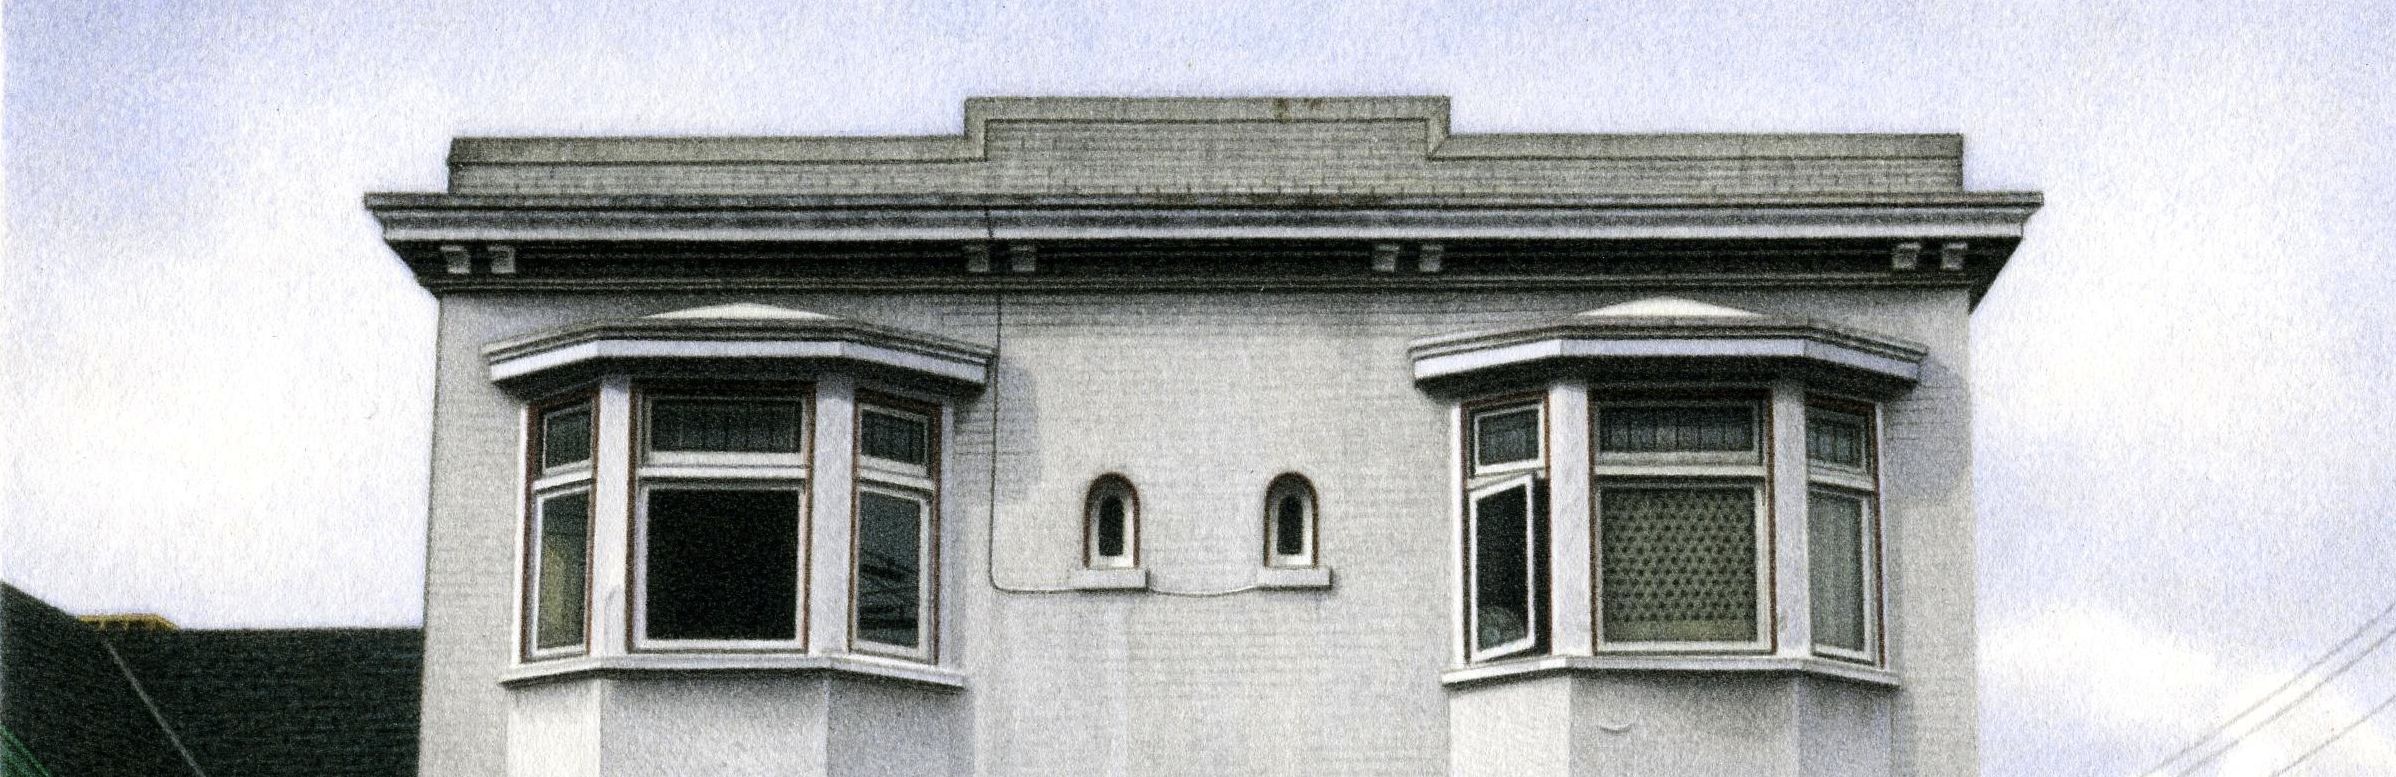 "Detail from 'Rosedale Manor', 2007 5.5x8"" acrylic on paper."